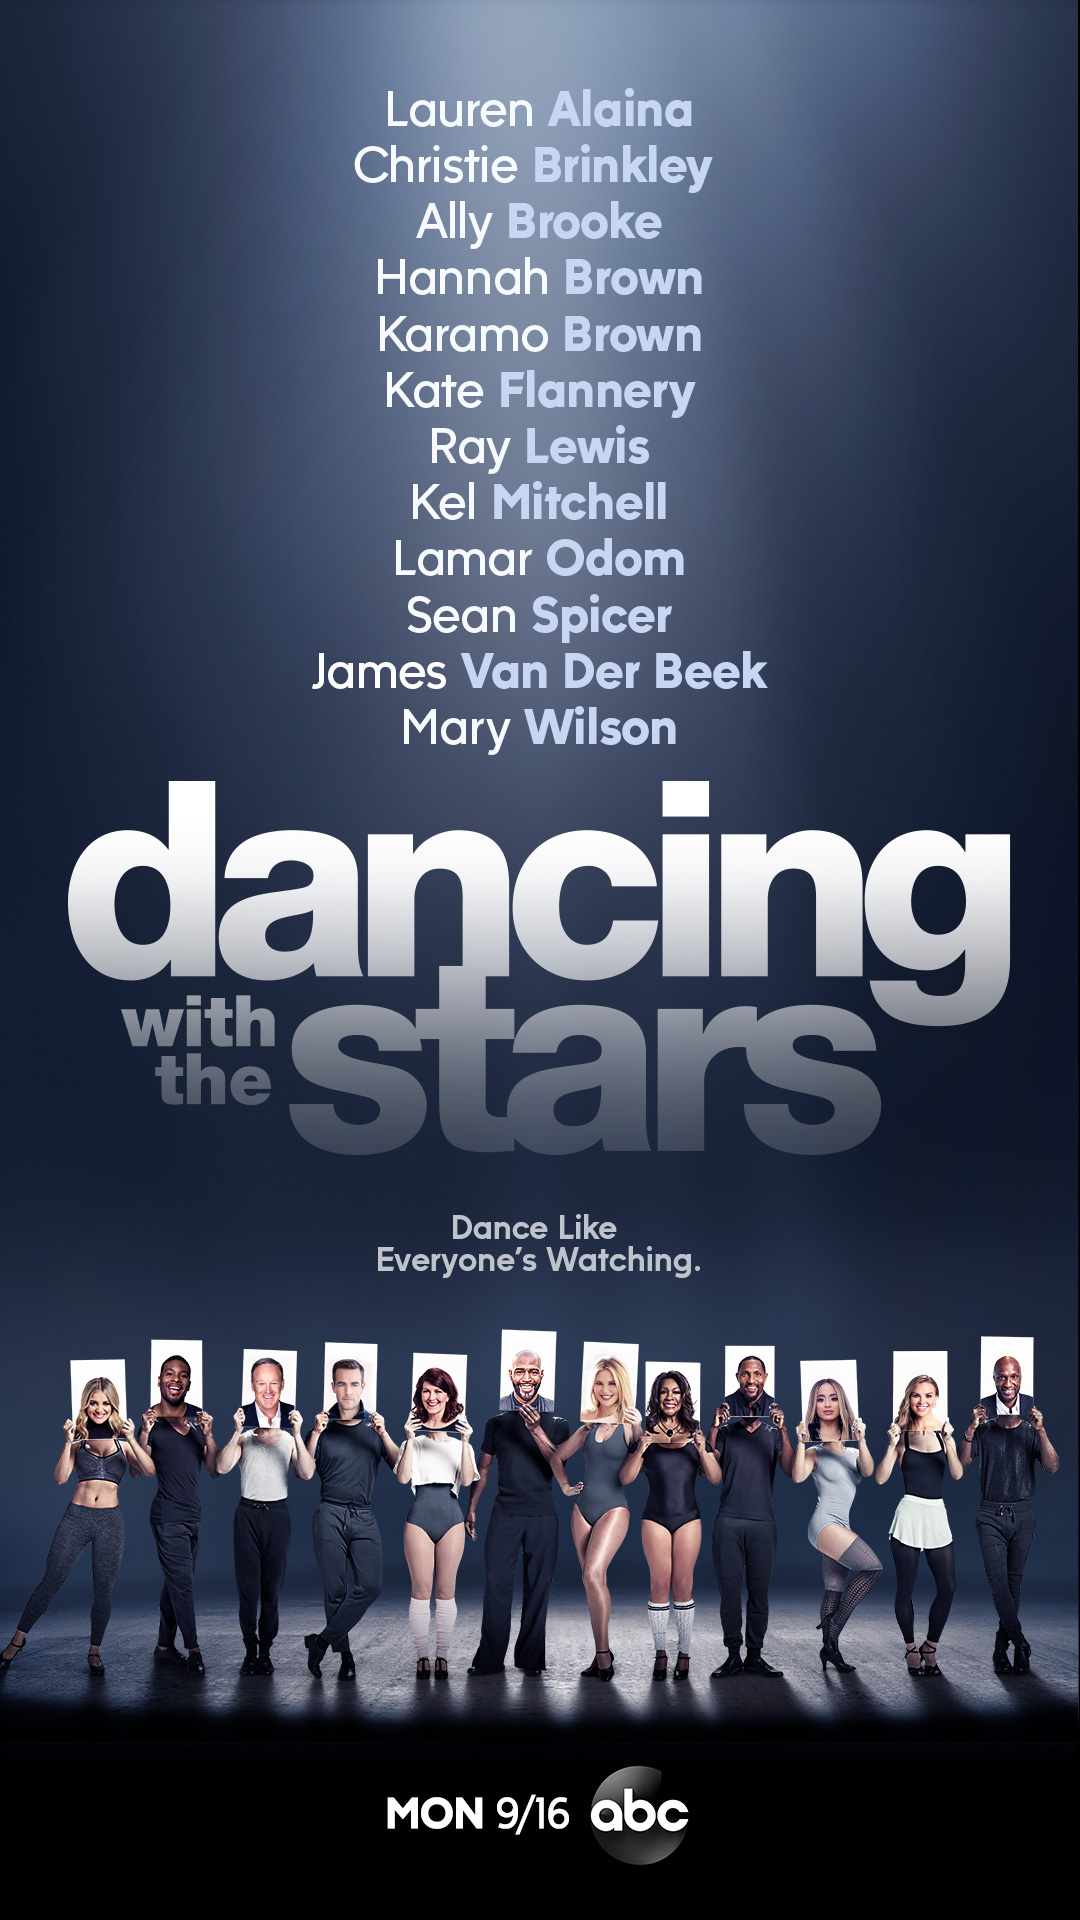 With a lineup of celebrities including a supermodel, a former White House press secretary, a Bachelorette, pro-athletes from the NFL and NBA, a Supreme and a TV icon to name a few,  Dancing with the Stars  is waltzing its way into its highly anticipated upcoming 2019 season.